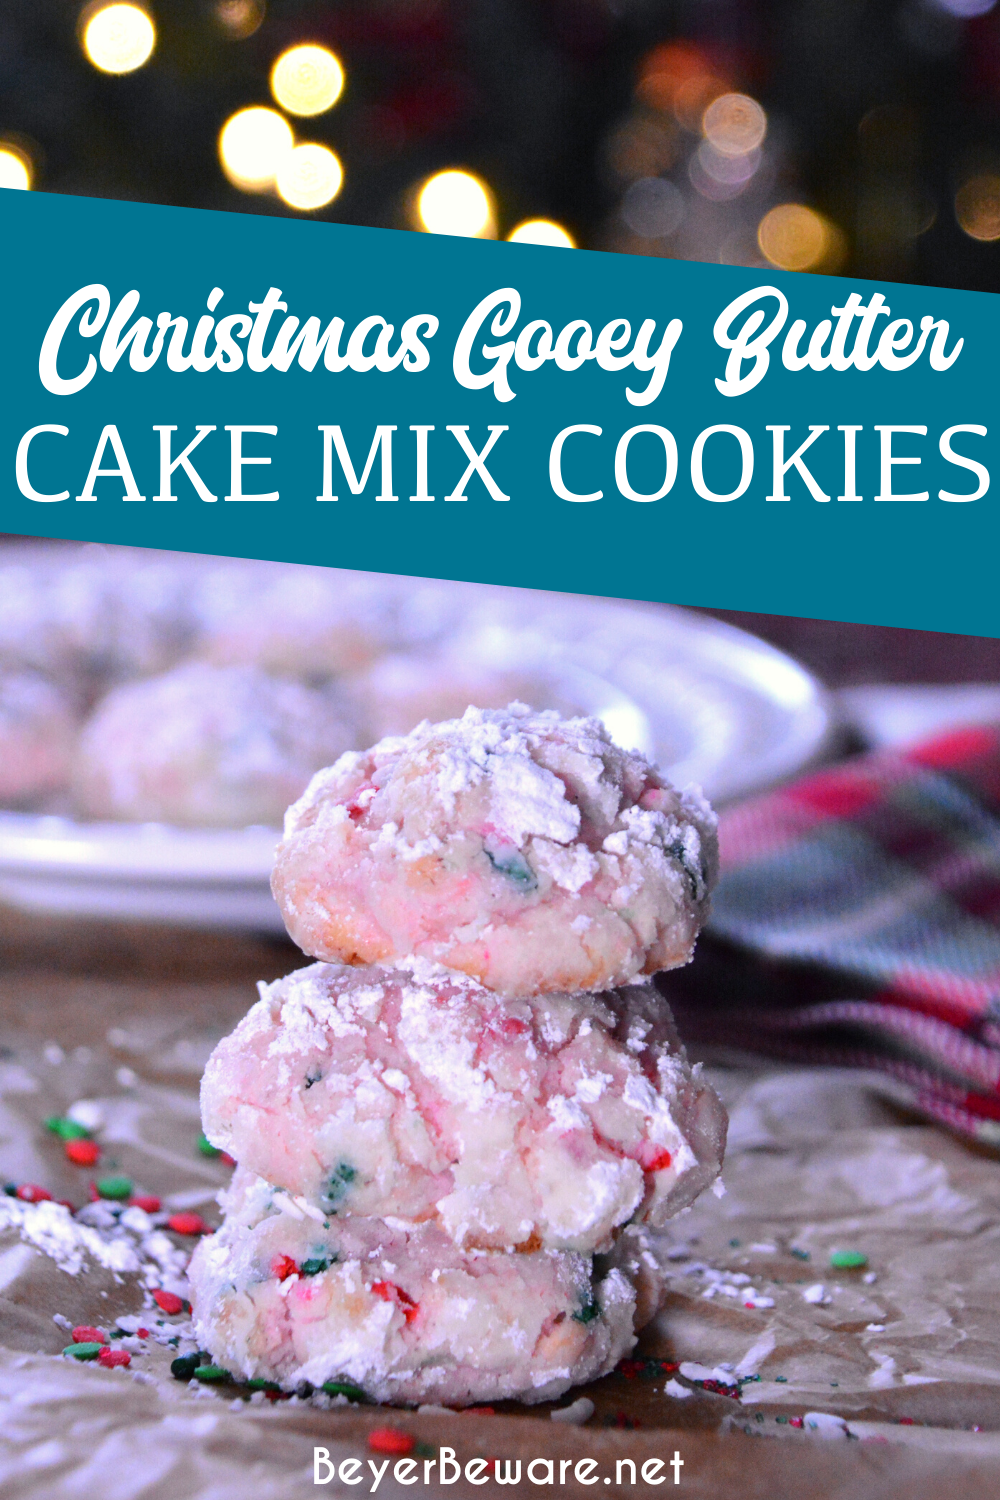 Christmas cake mix gooey butter cookies are a light and fluffy cake mix Christmas cookie made with just for ingredients.